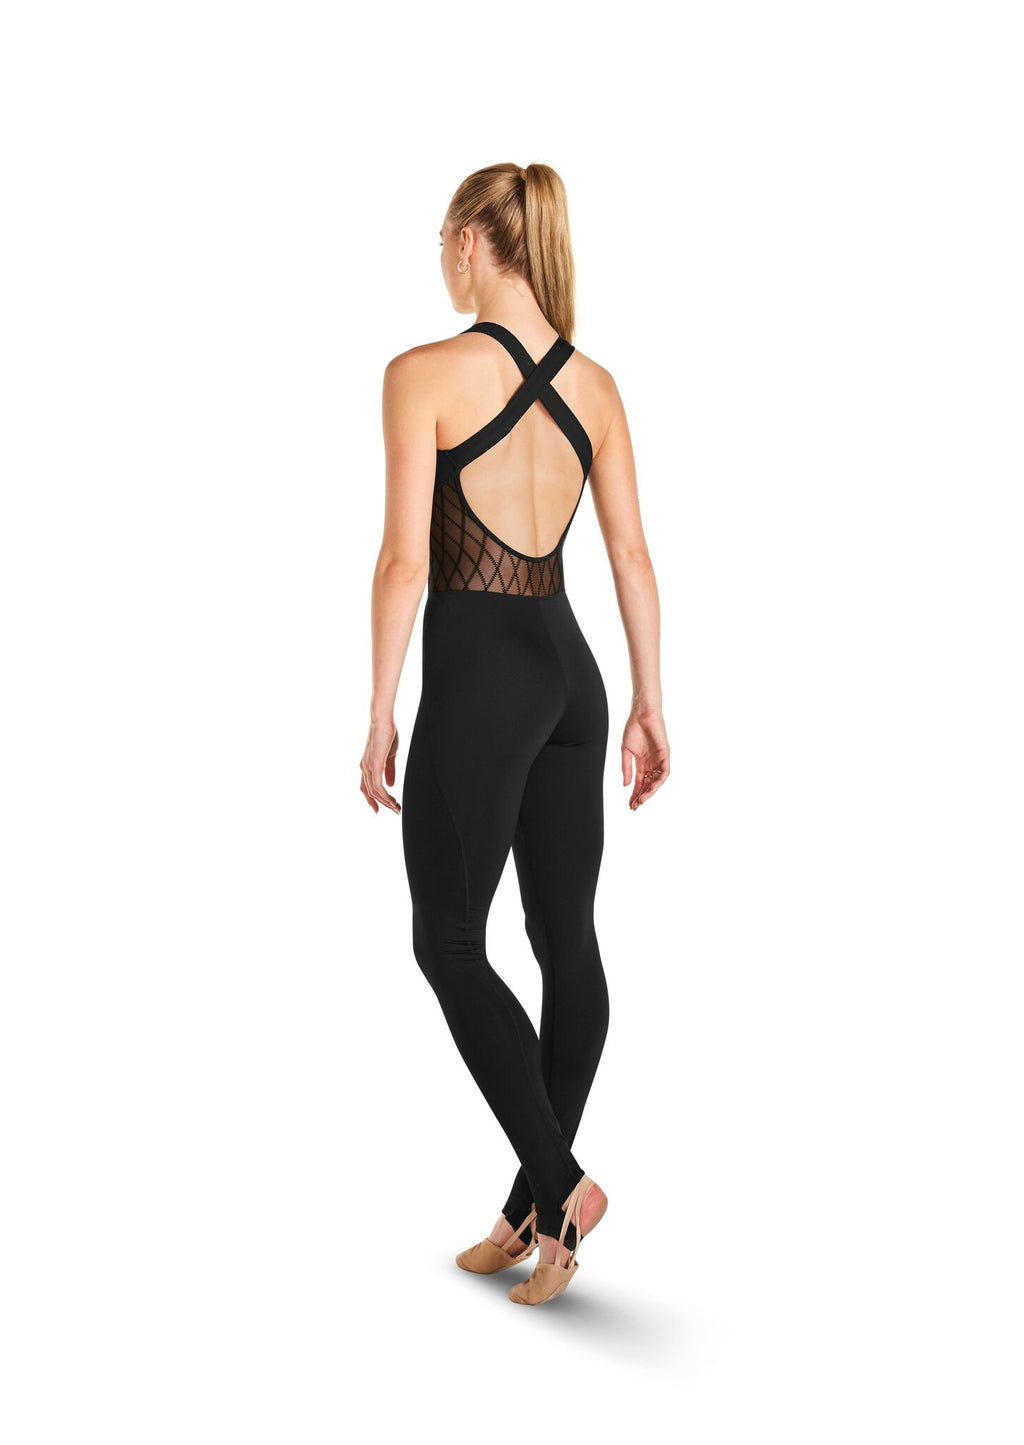 Unitard with Diamond Flock Mesh Accents - Adult